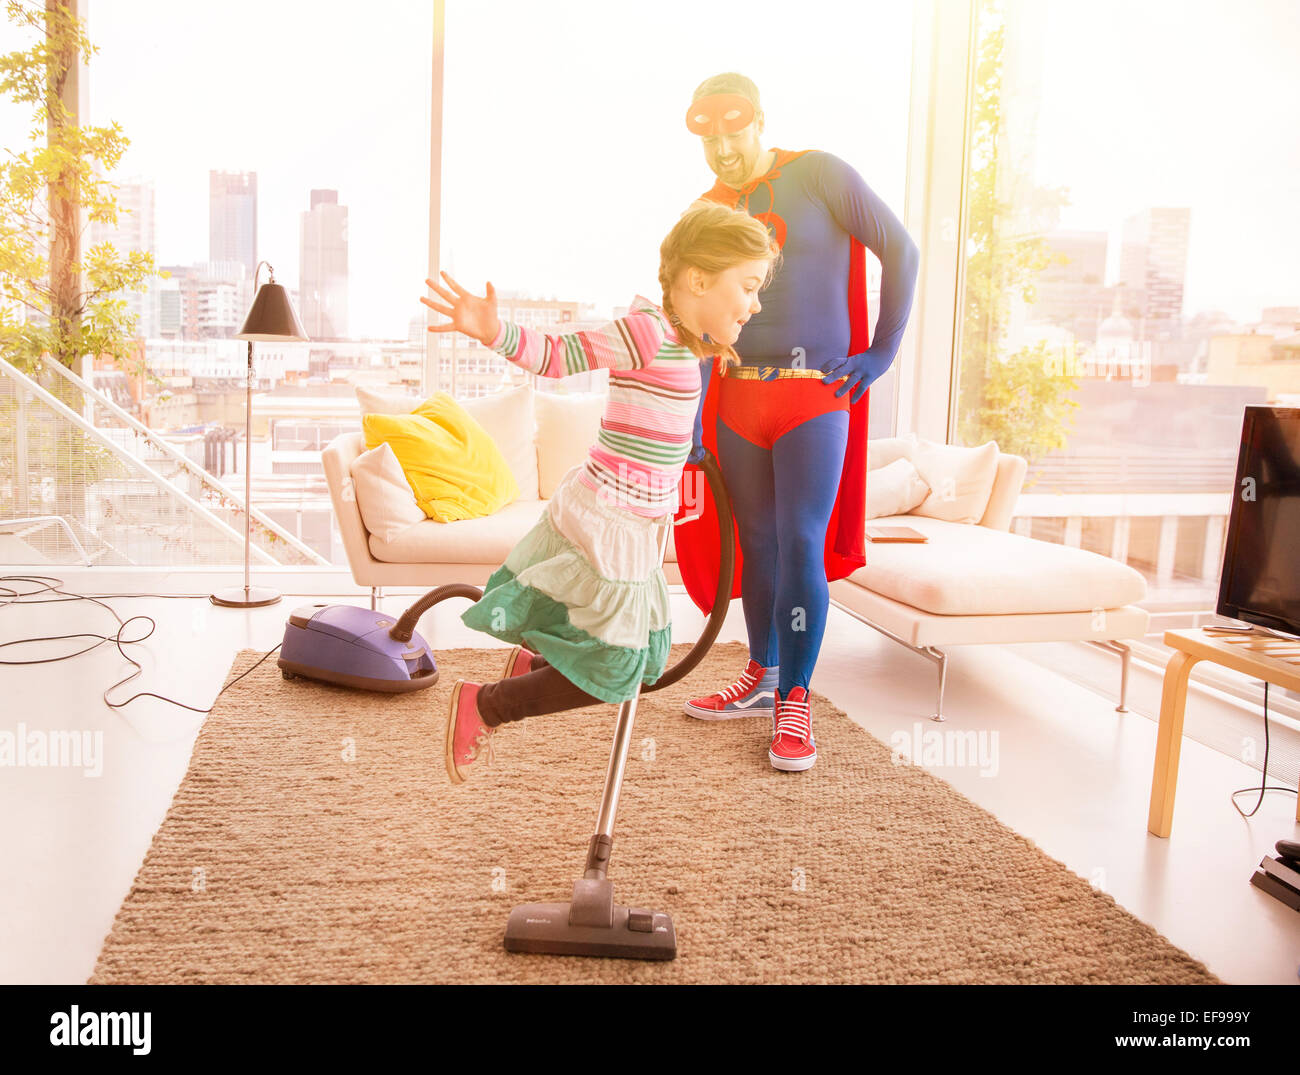 Superhero father vacuuming while daughter jumps in living room - Stock Image